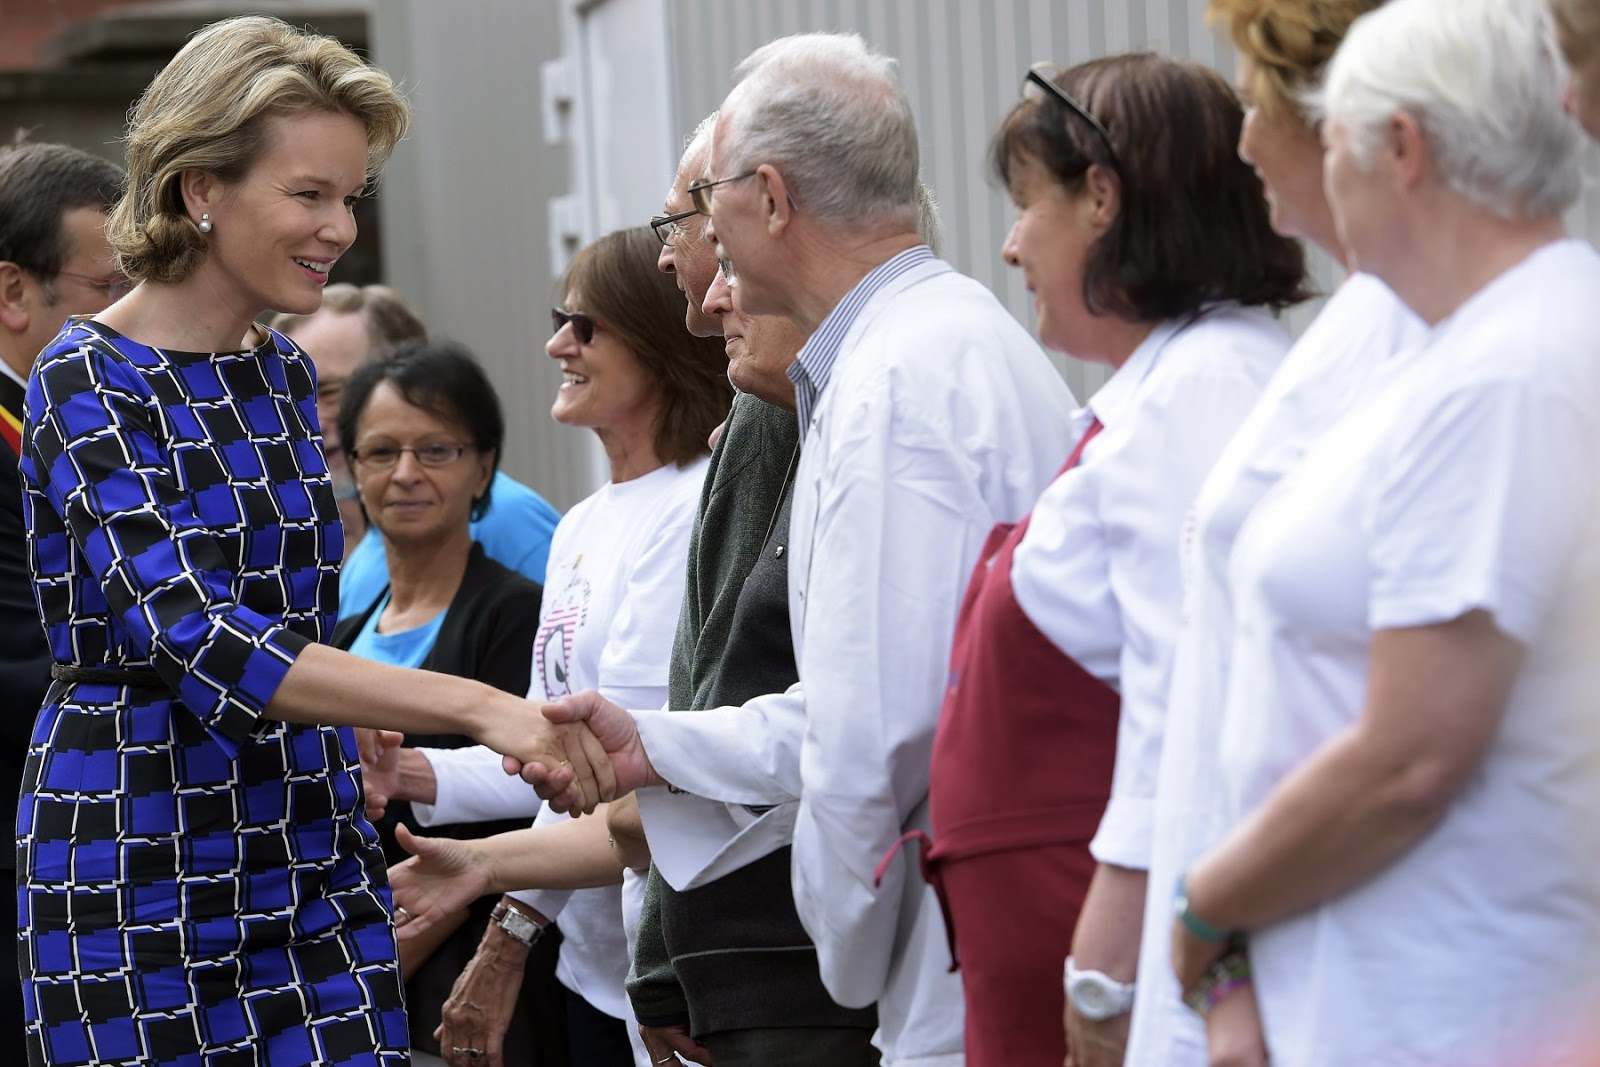 Queen Mathilde also had time to attend to some of the many people who had turned up to catch a glimpse of the Queen.